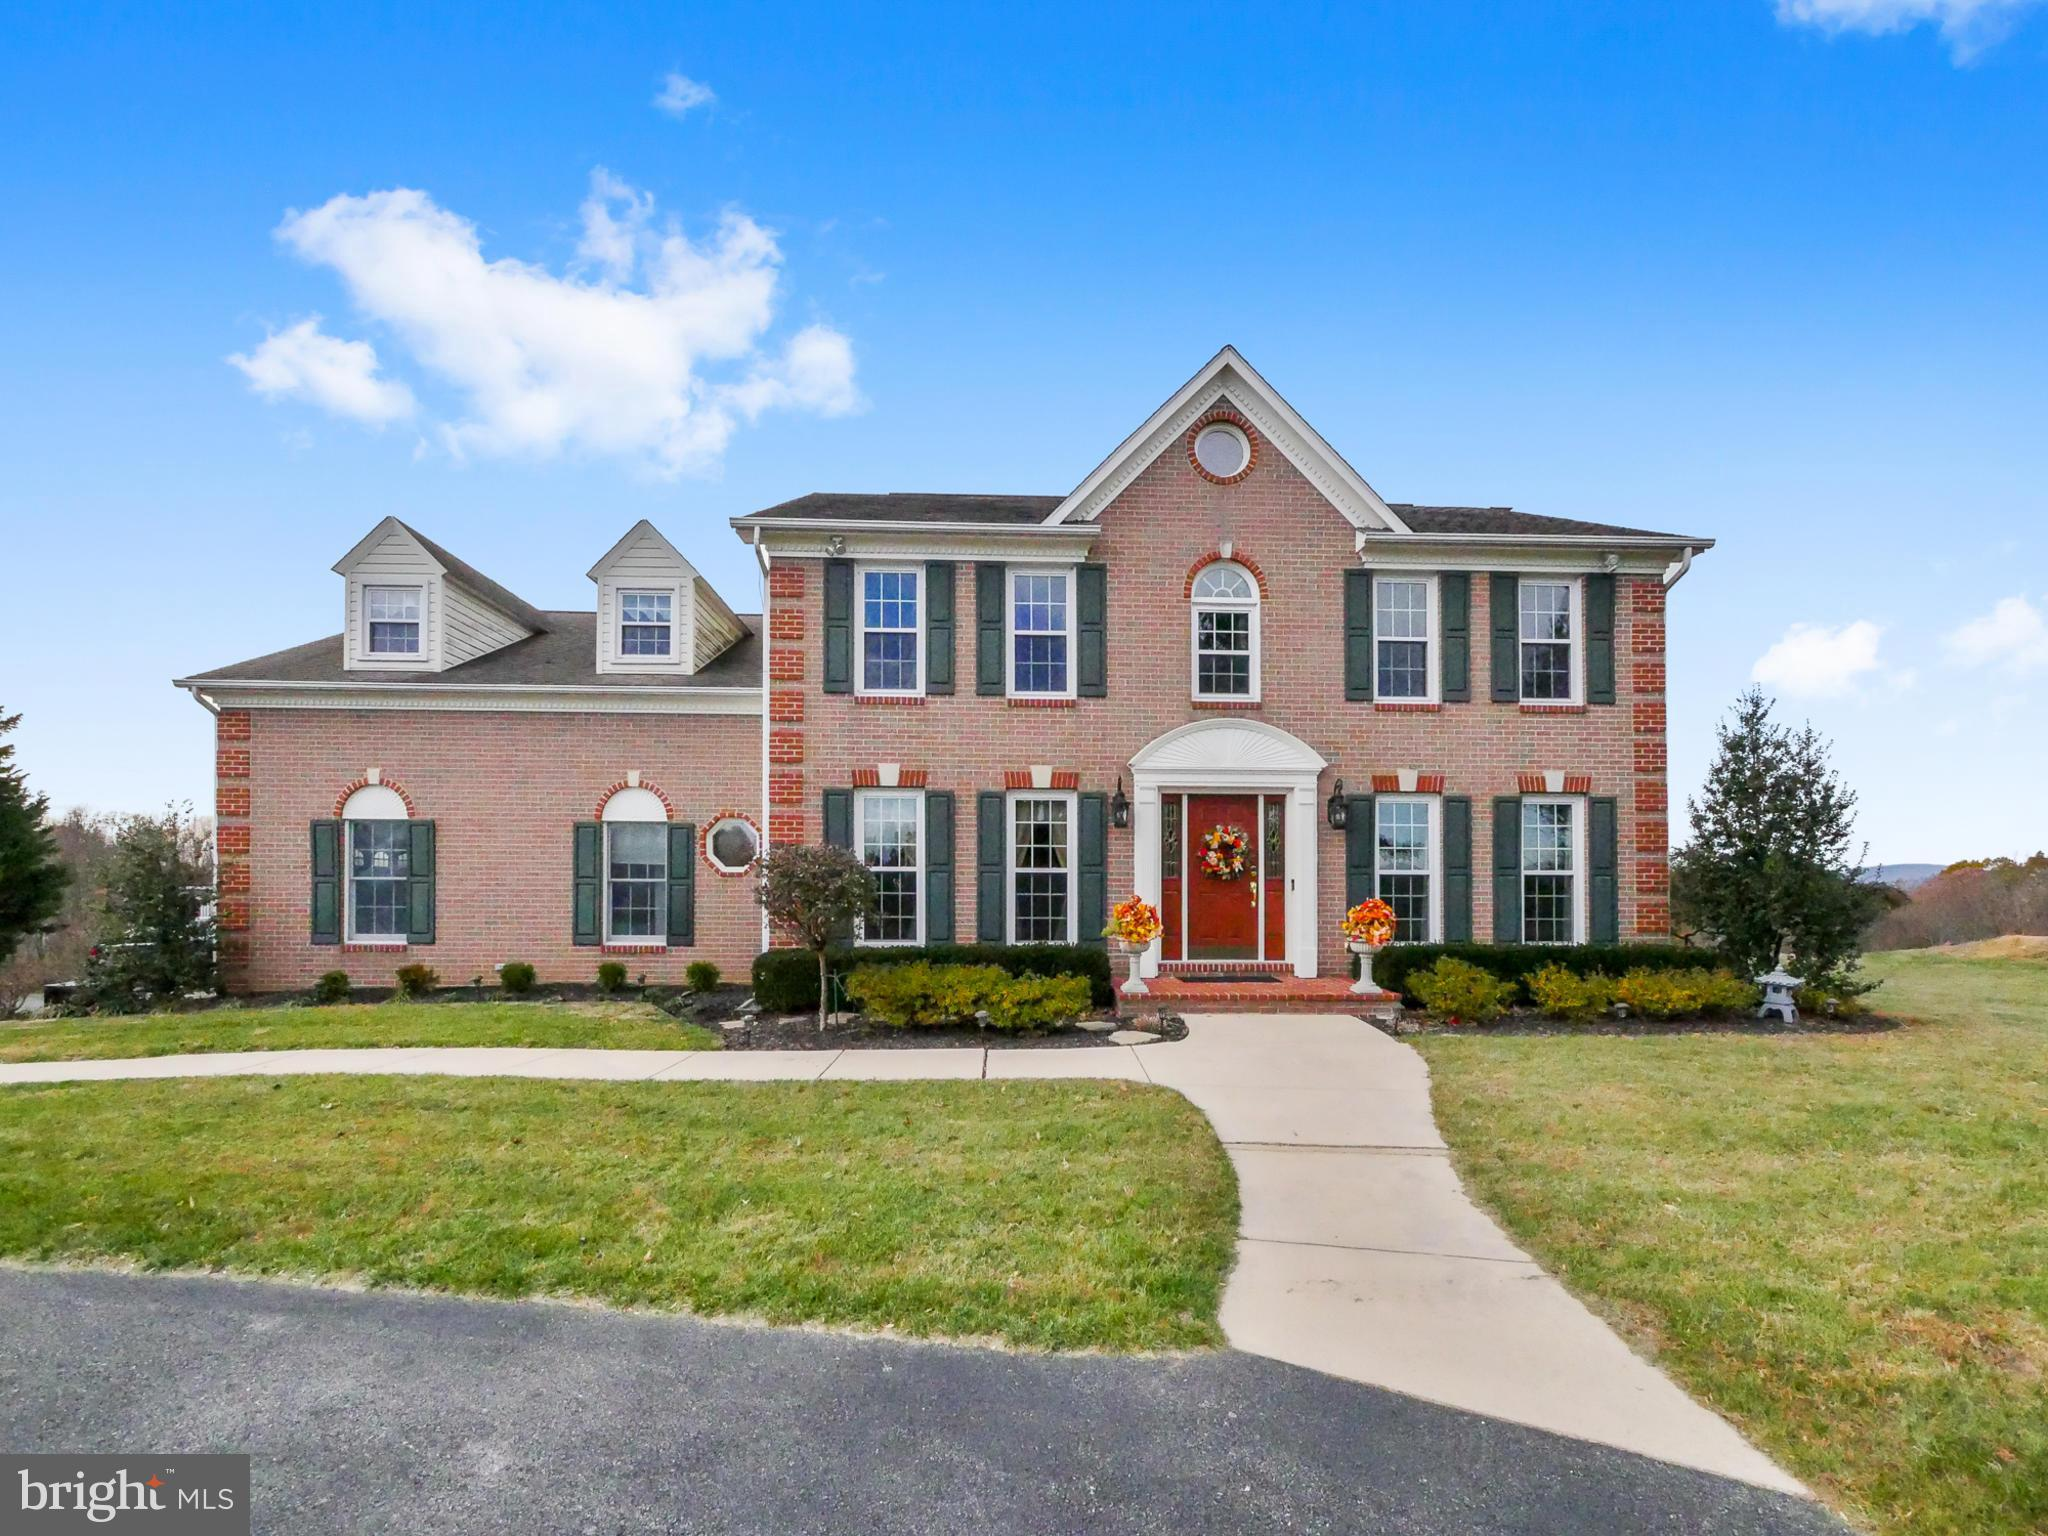 3330 CARLISLE DRIVE, KNOXVILLE, MD 21758